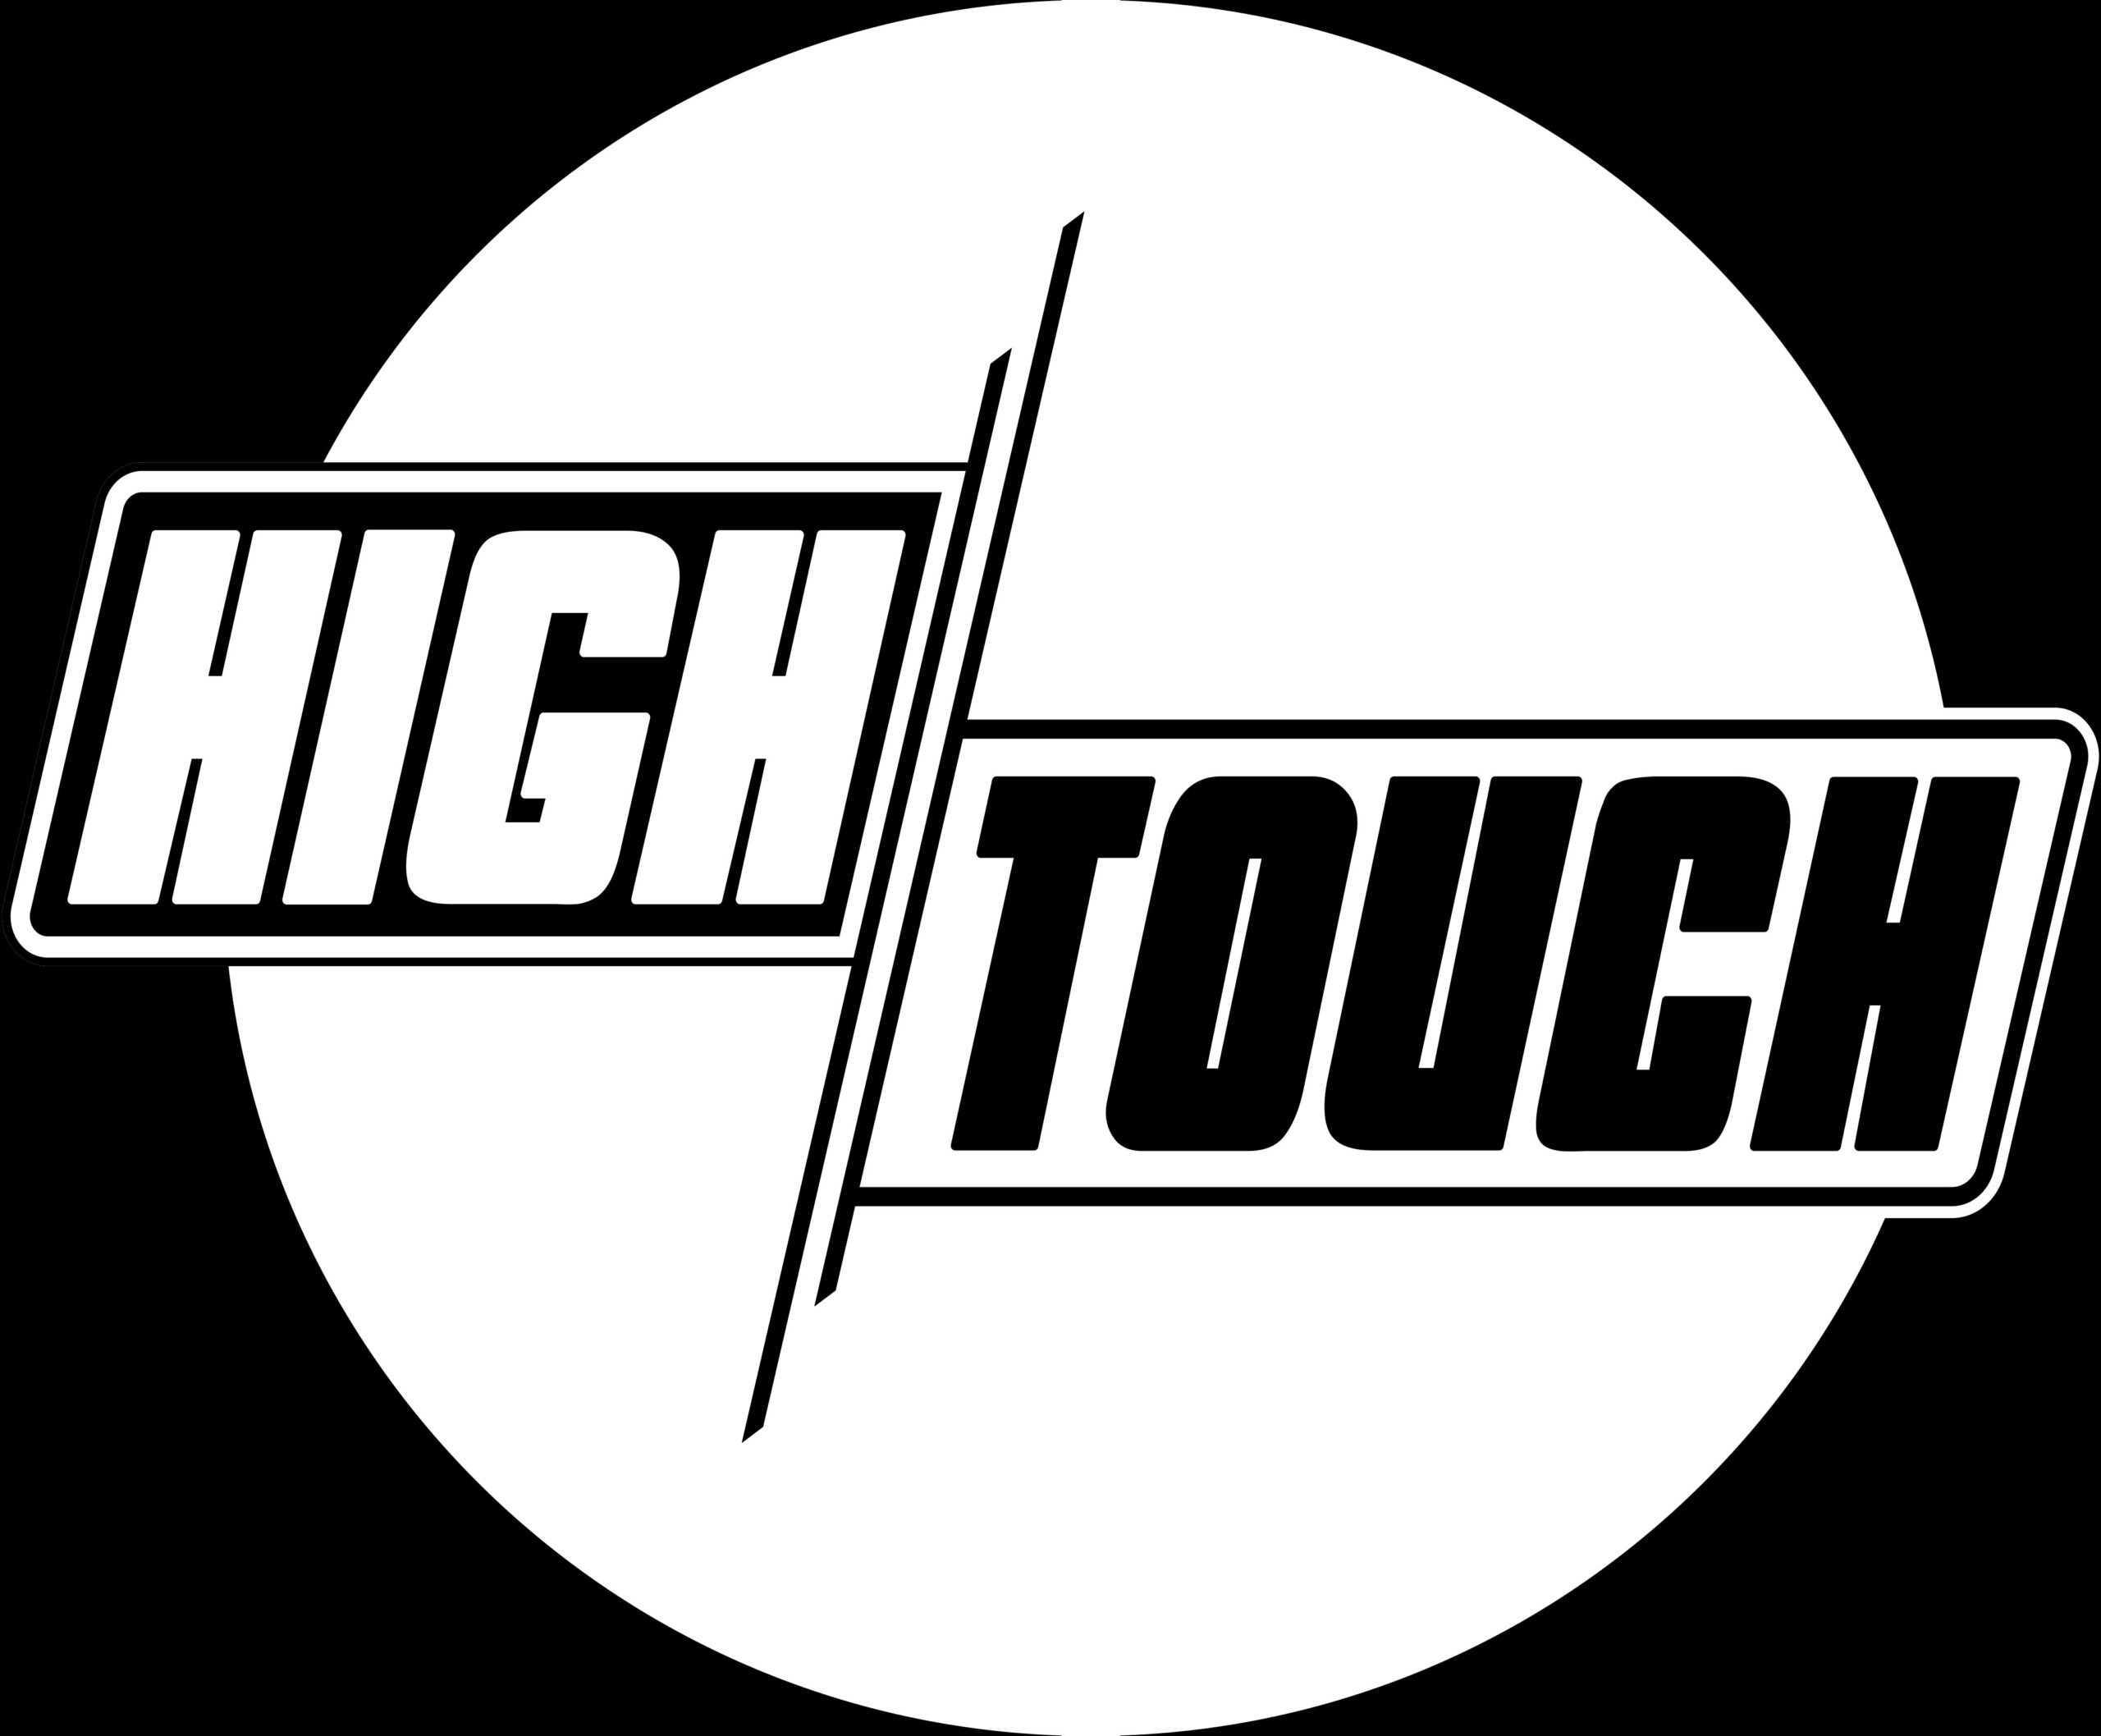 HIGH TOUCH